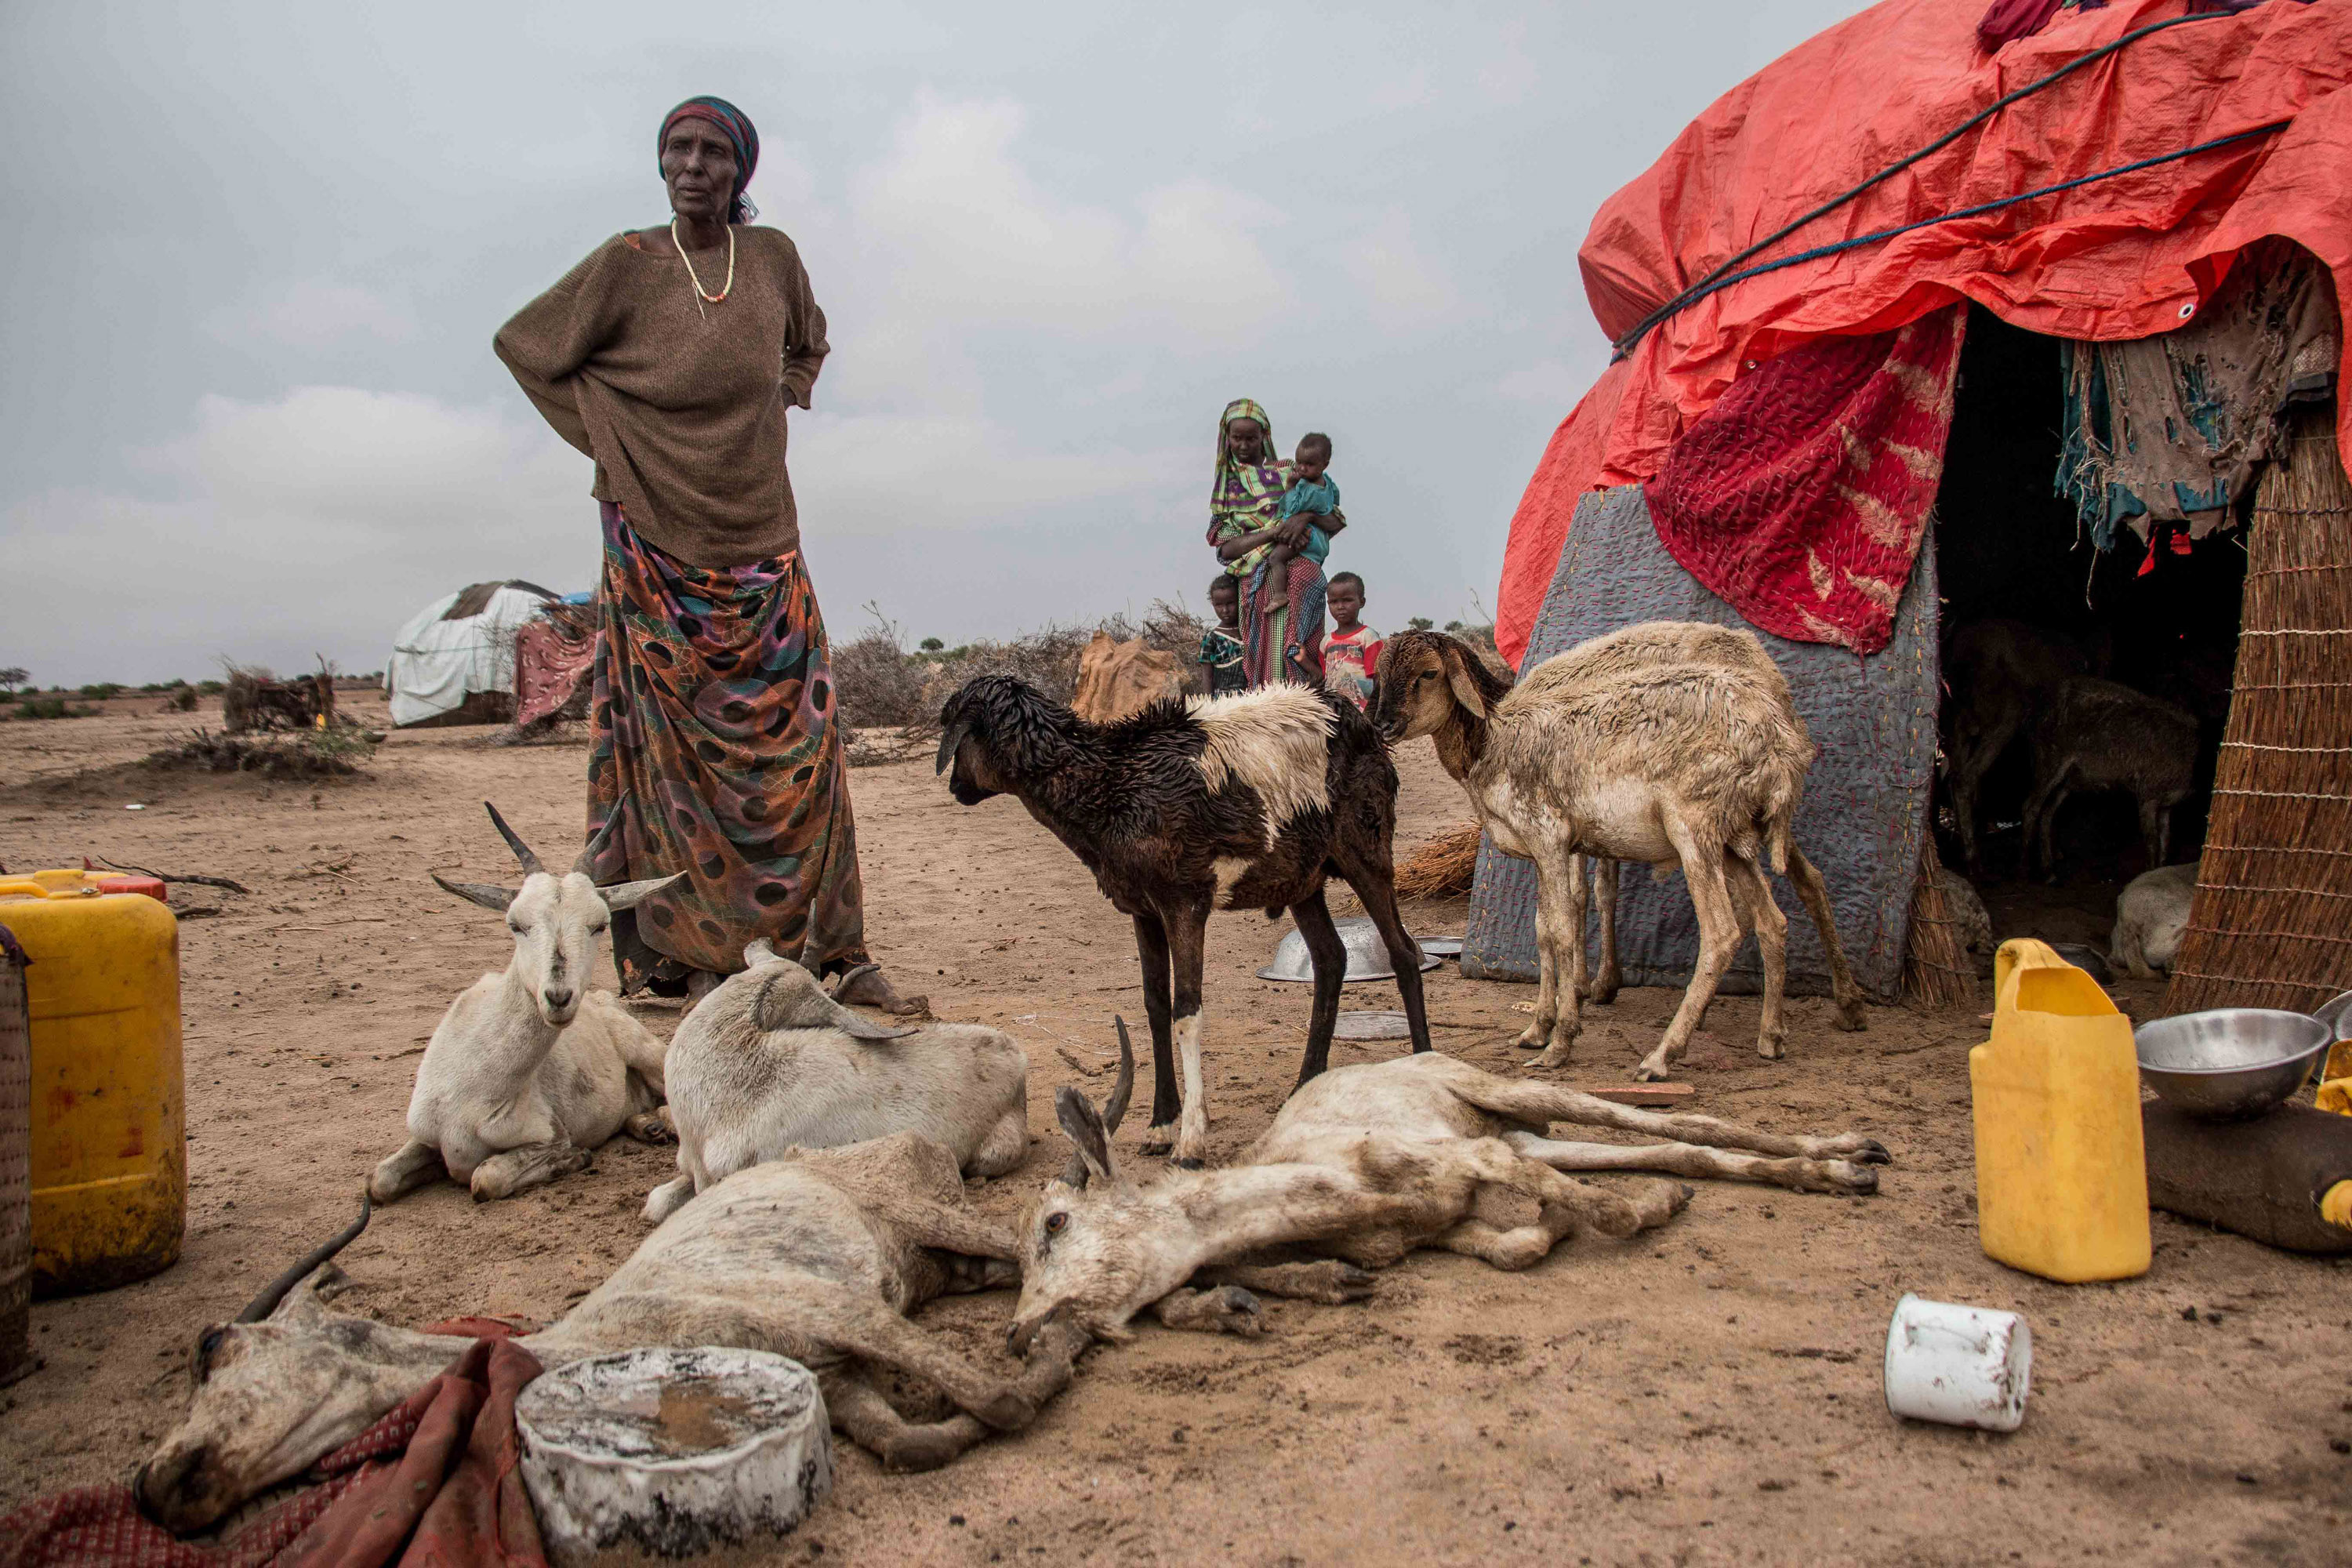 Killing Drought in Somalia